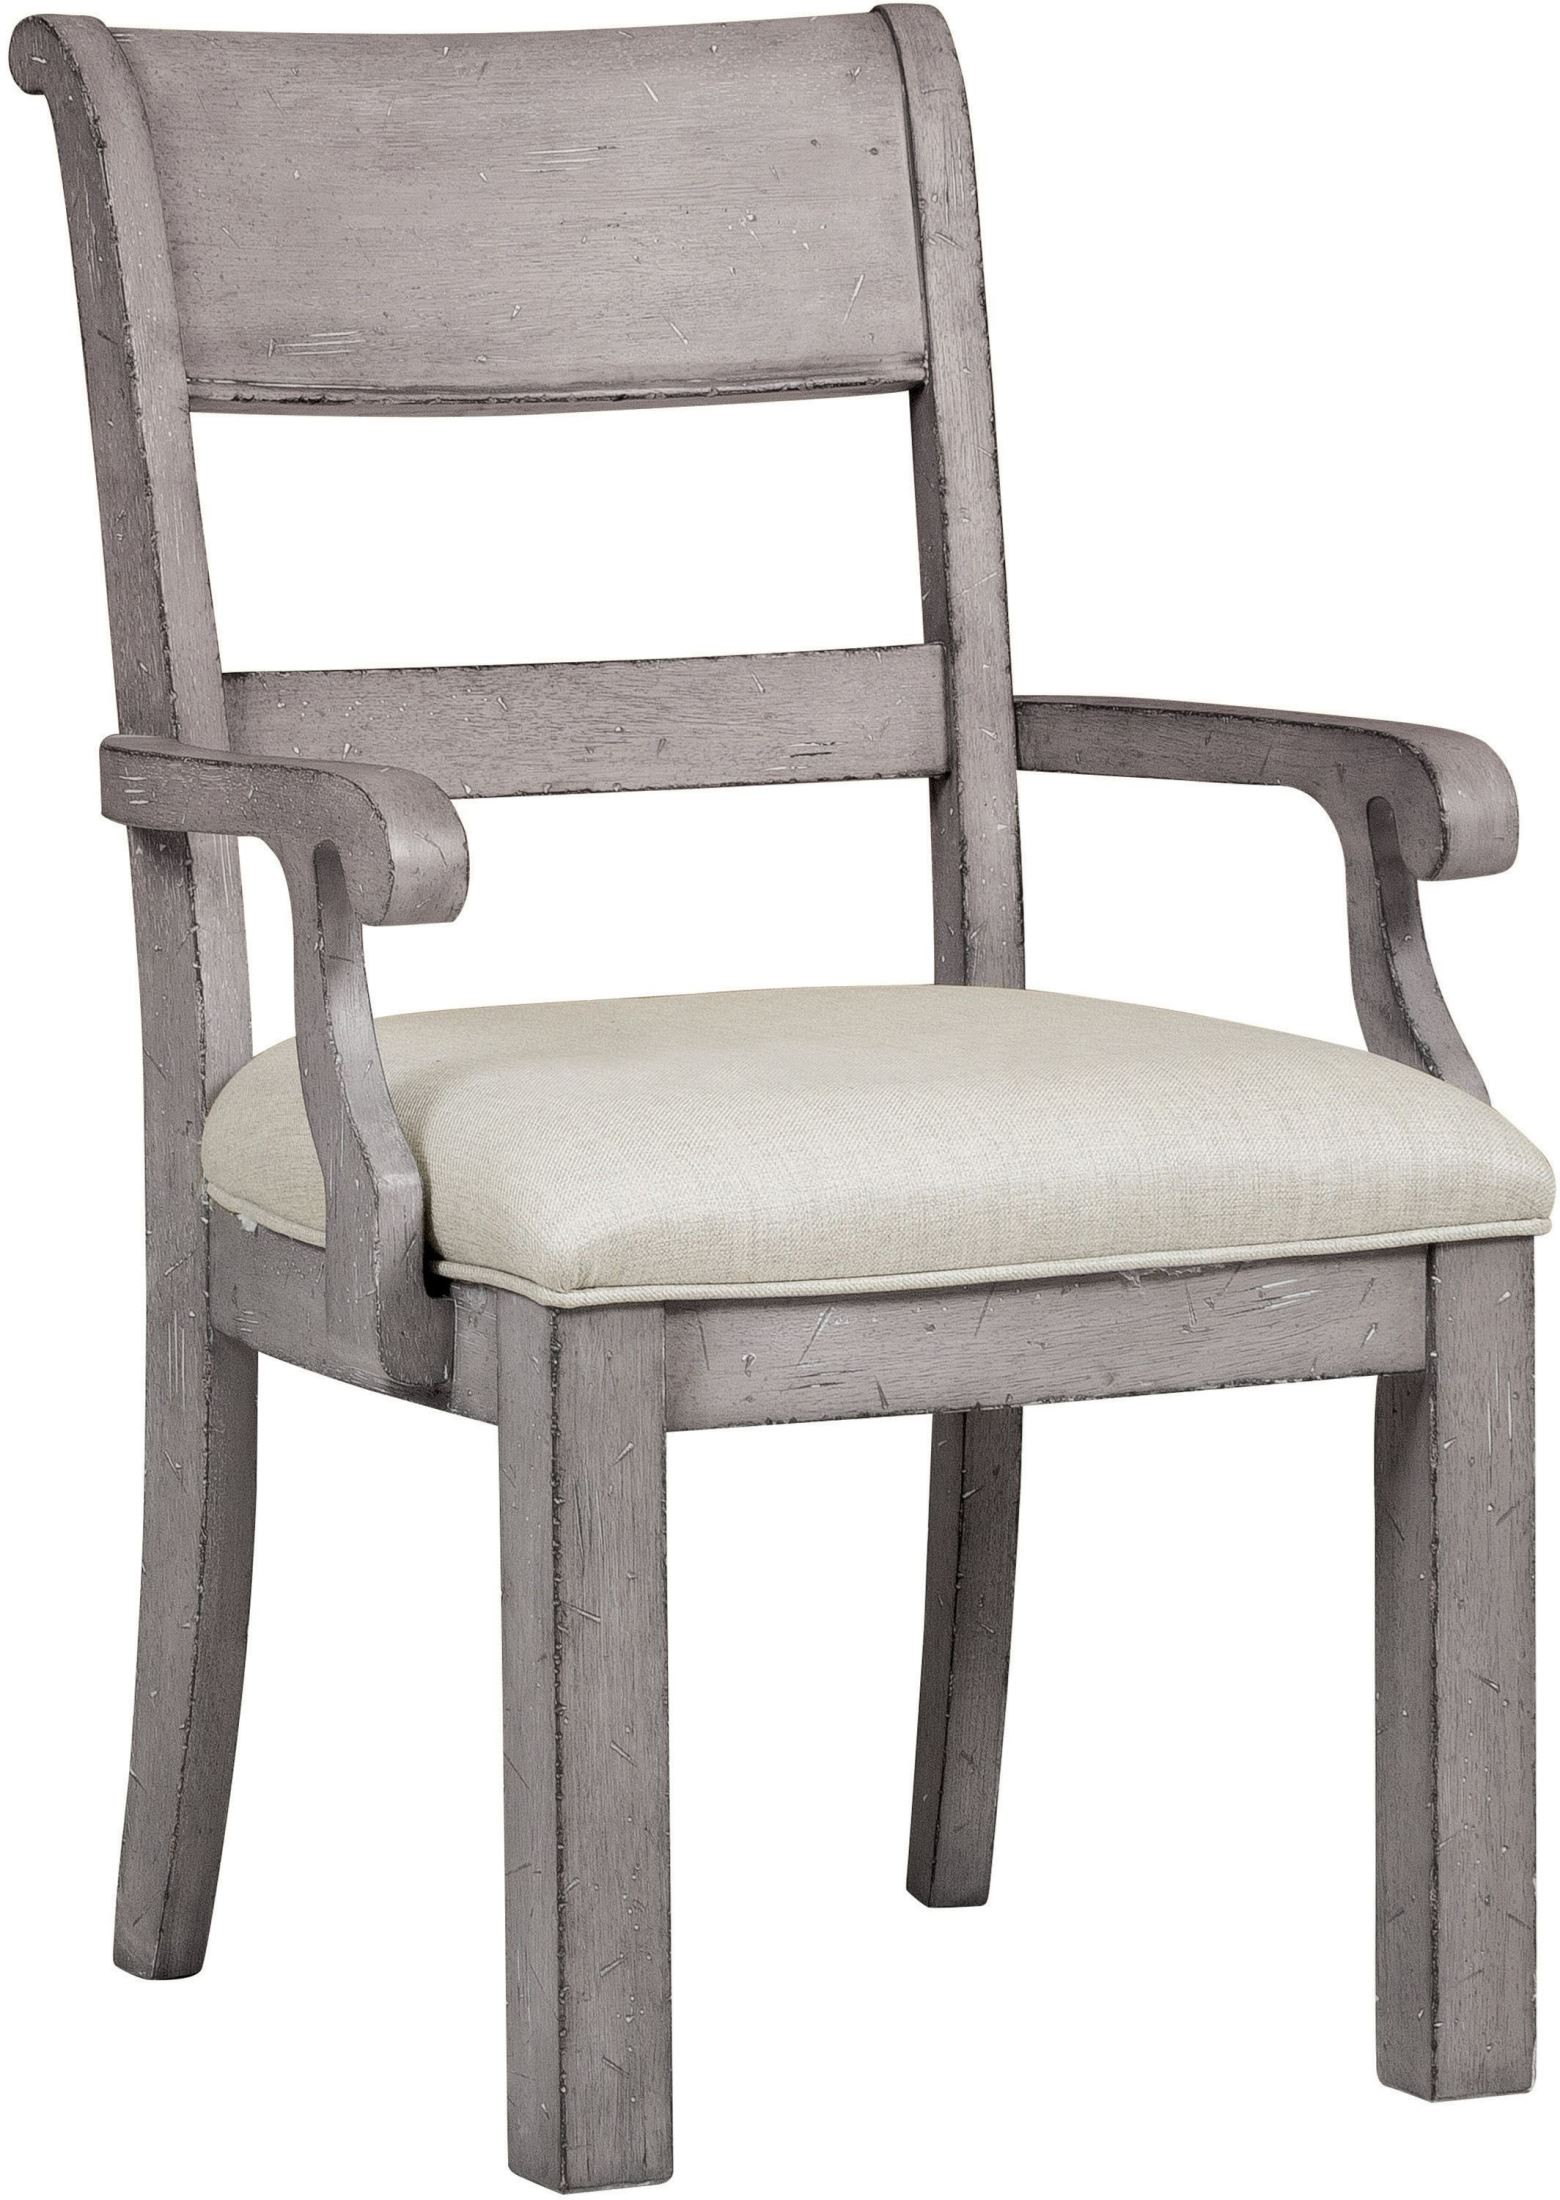 Prospect hill gray arm chair s samuel lawrence